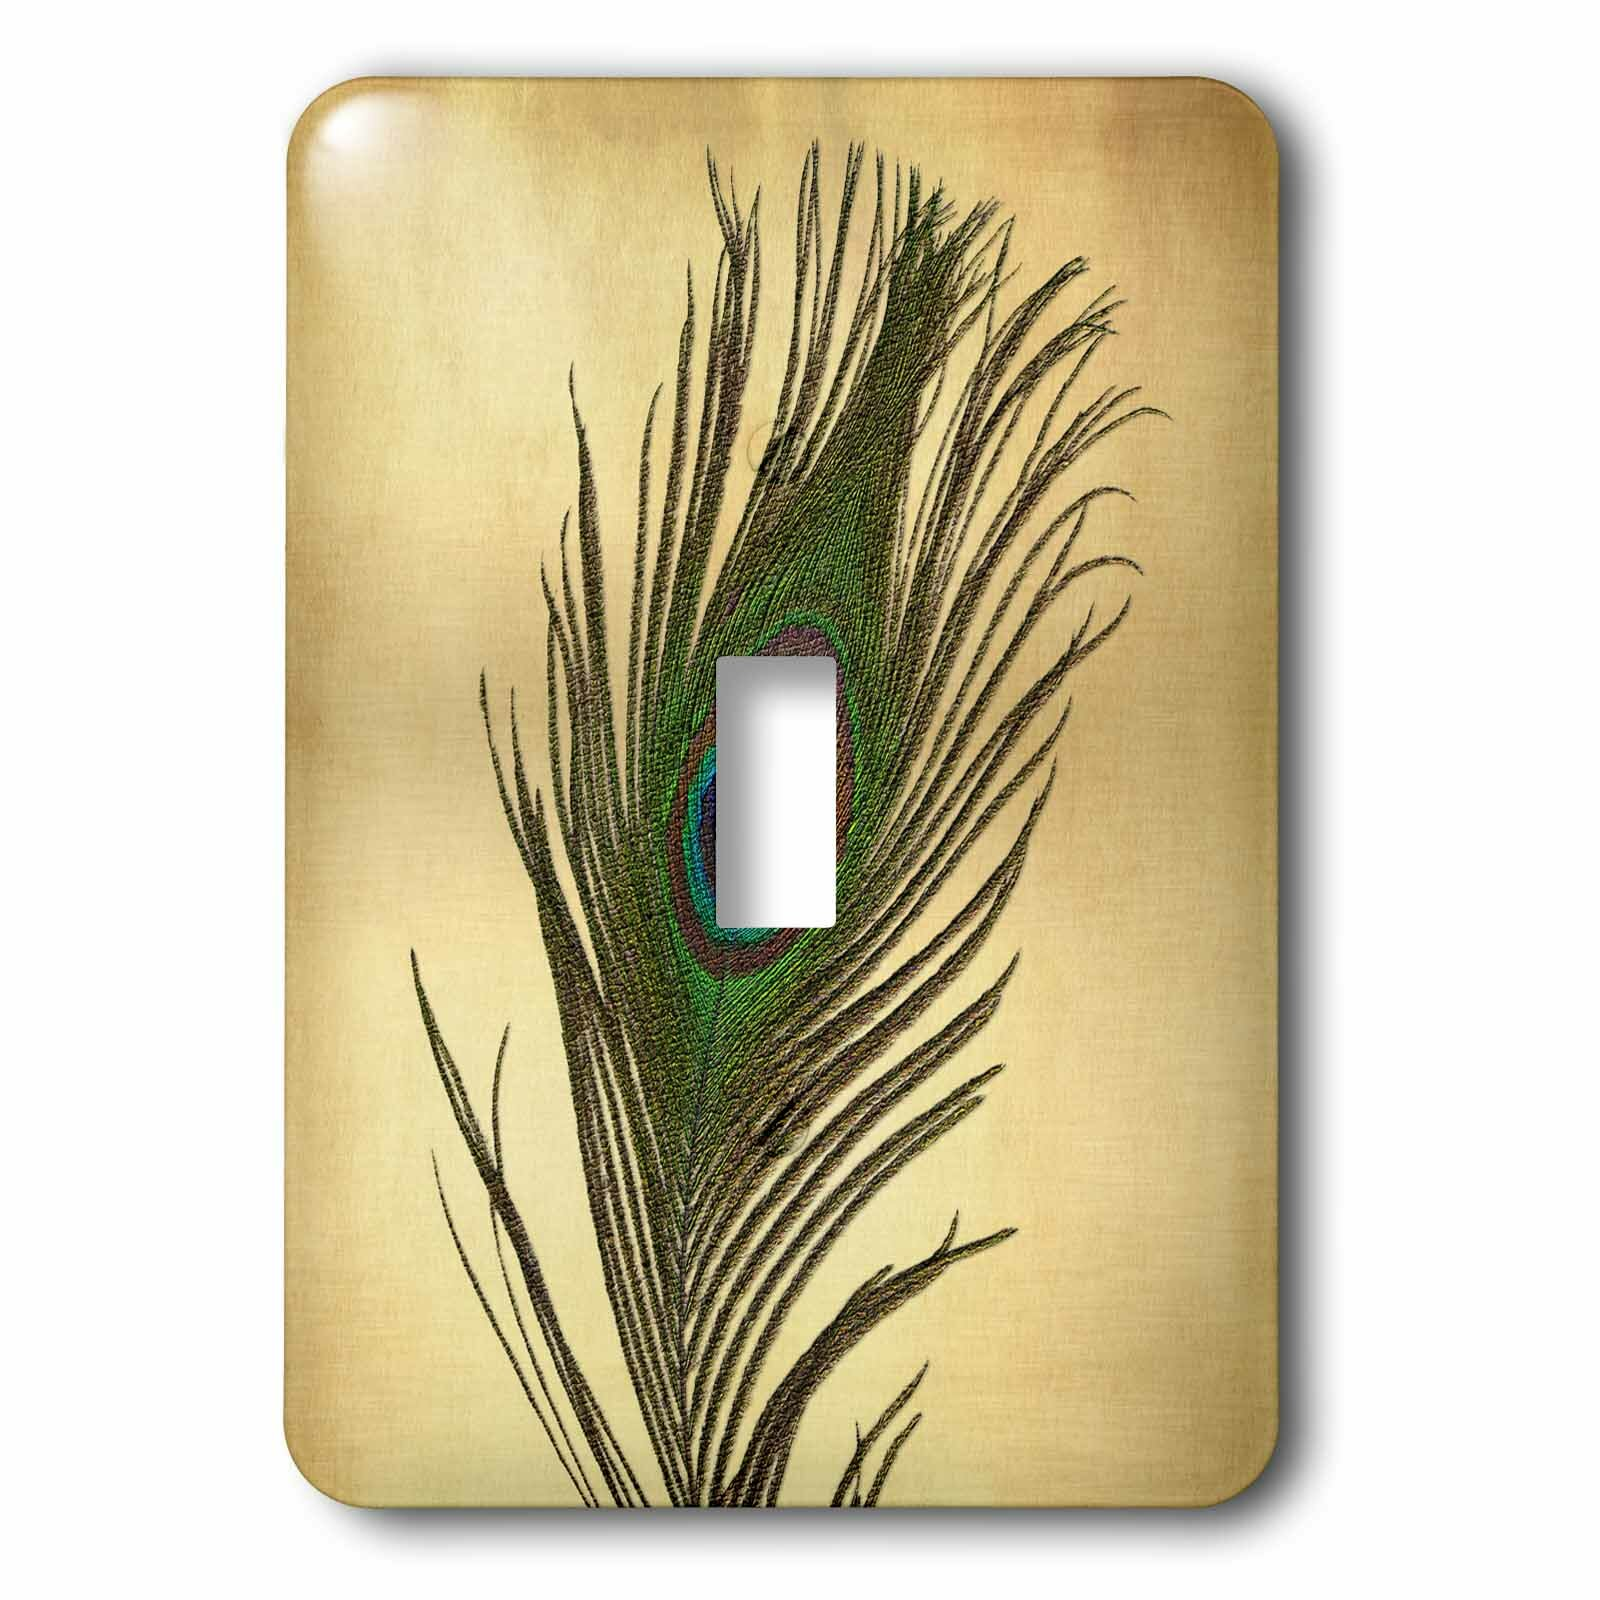 PEACOCK FEATHERS HOME WALL DECOR SINGLE LIGHT SWITCH PLATE